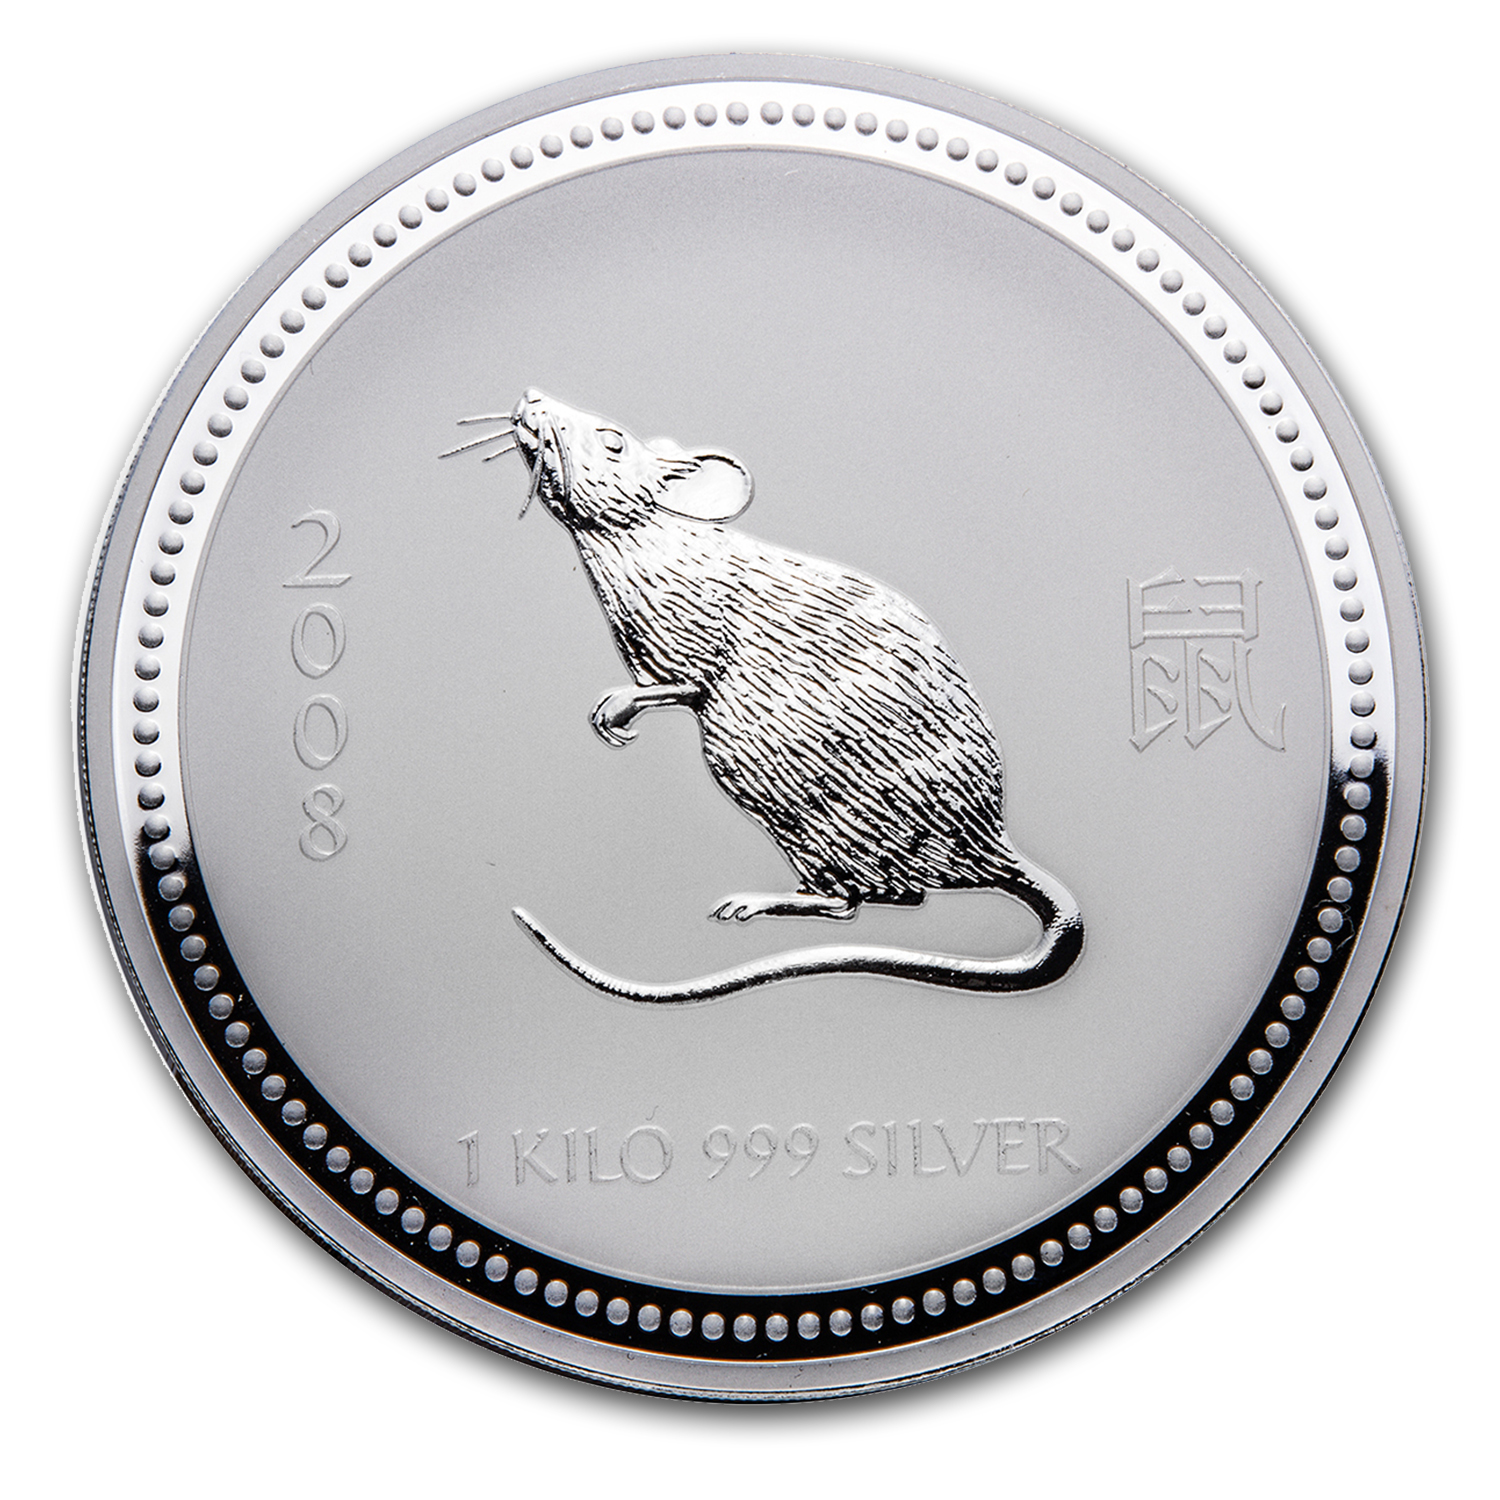 2008 Australia 1 kilo Silver Year of the Mouse BU (Series I)